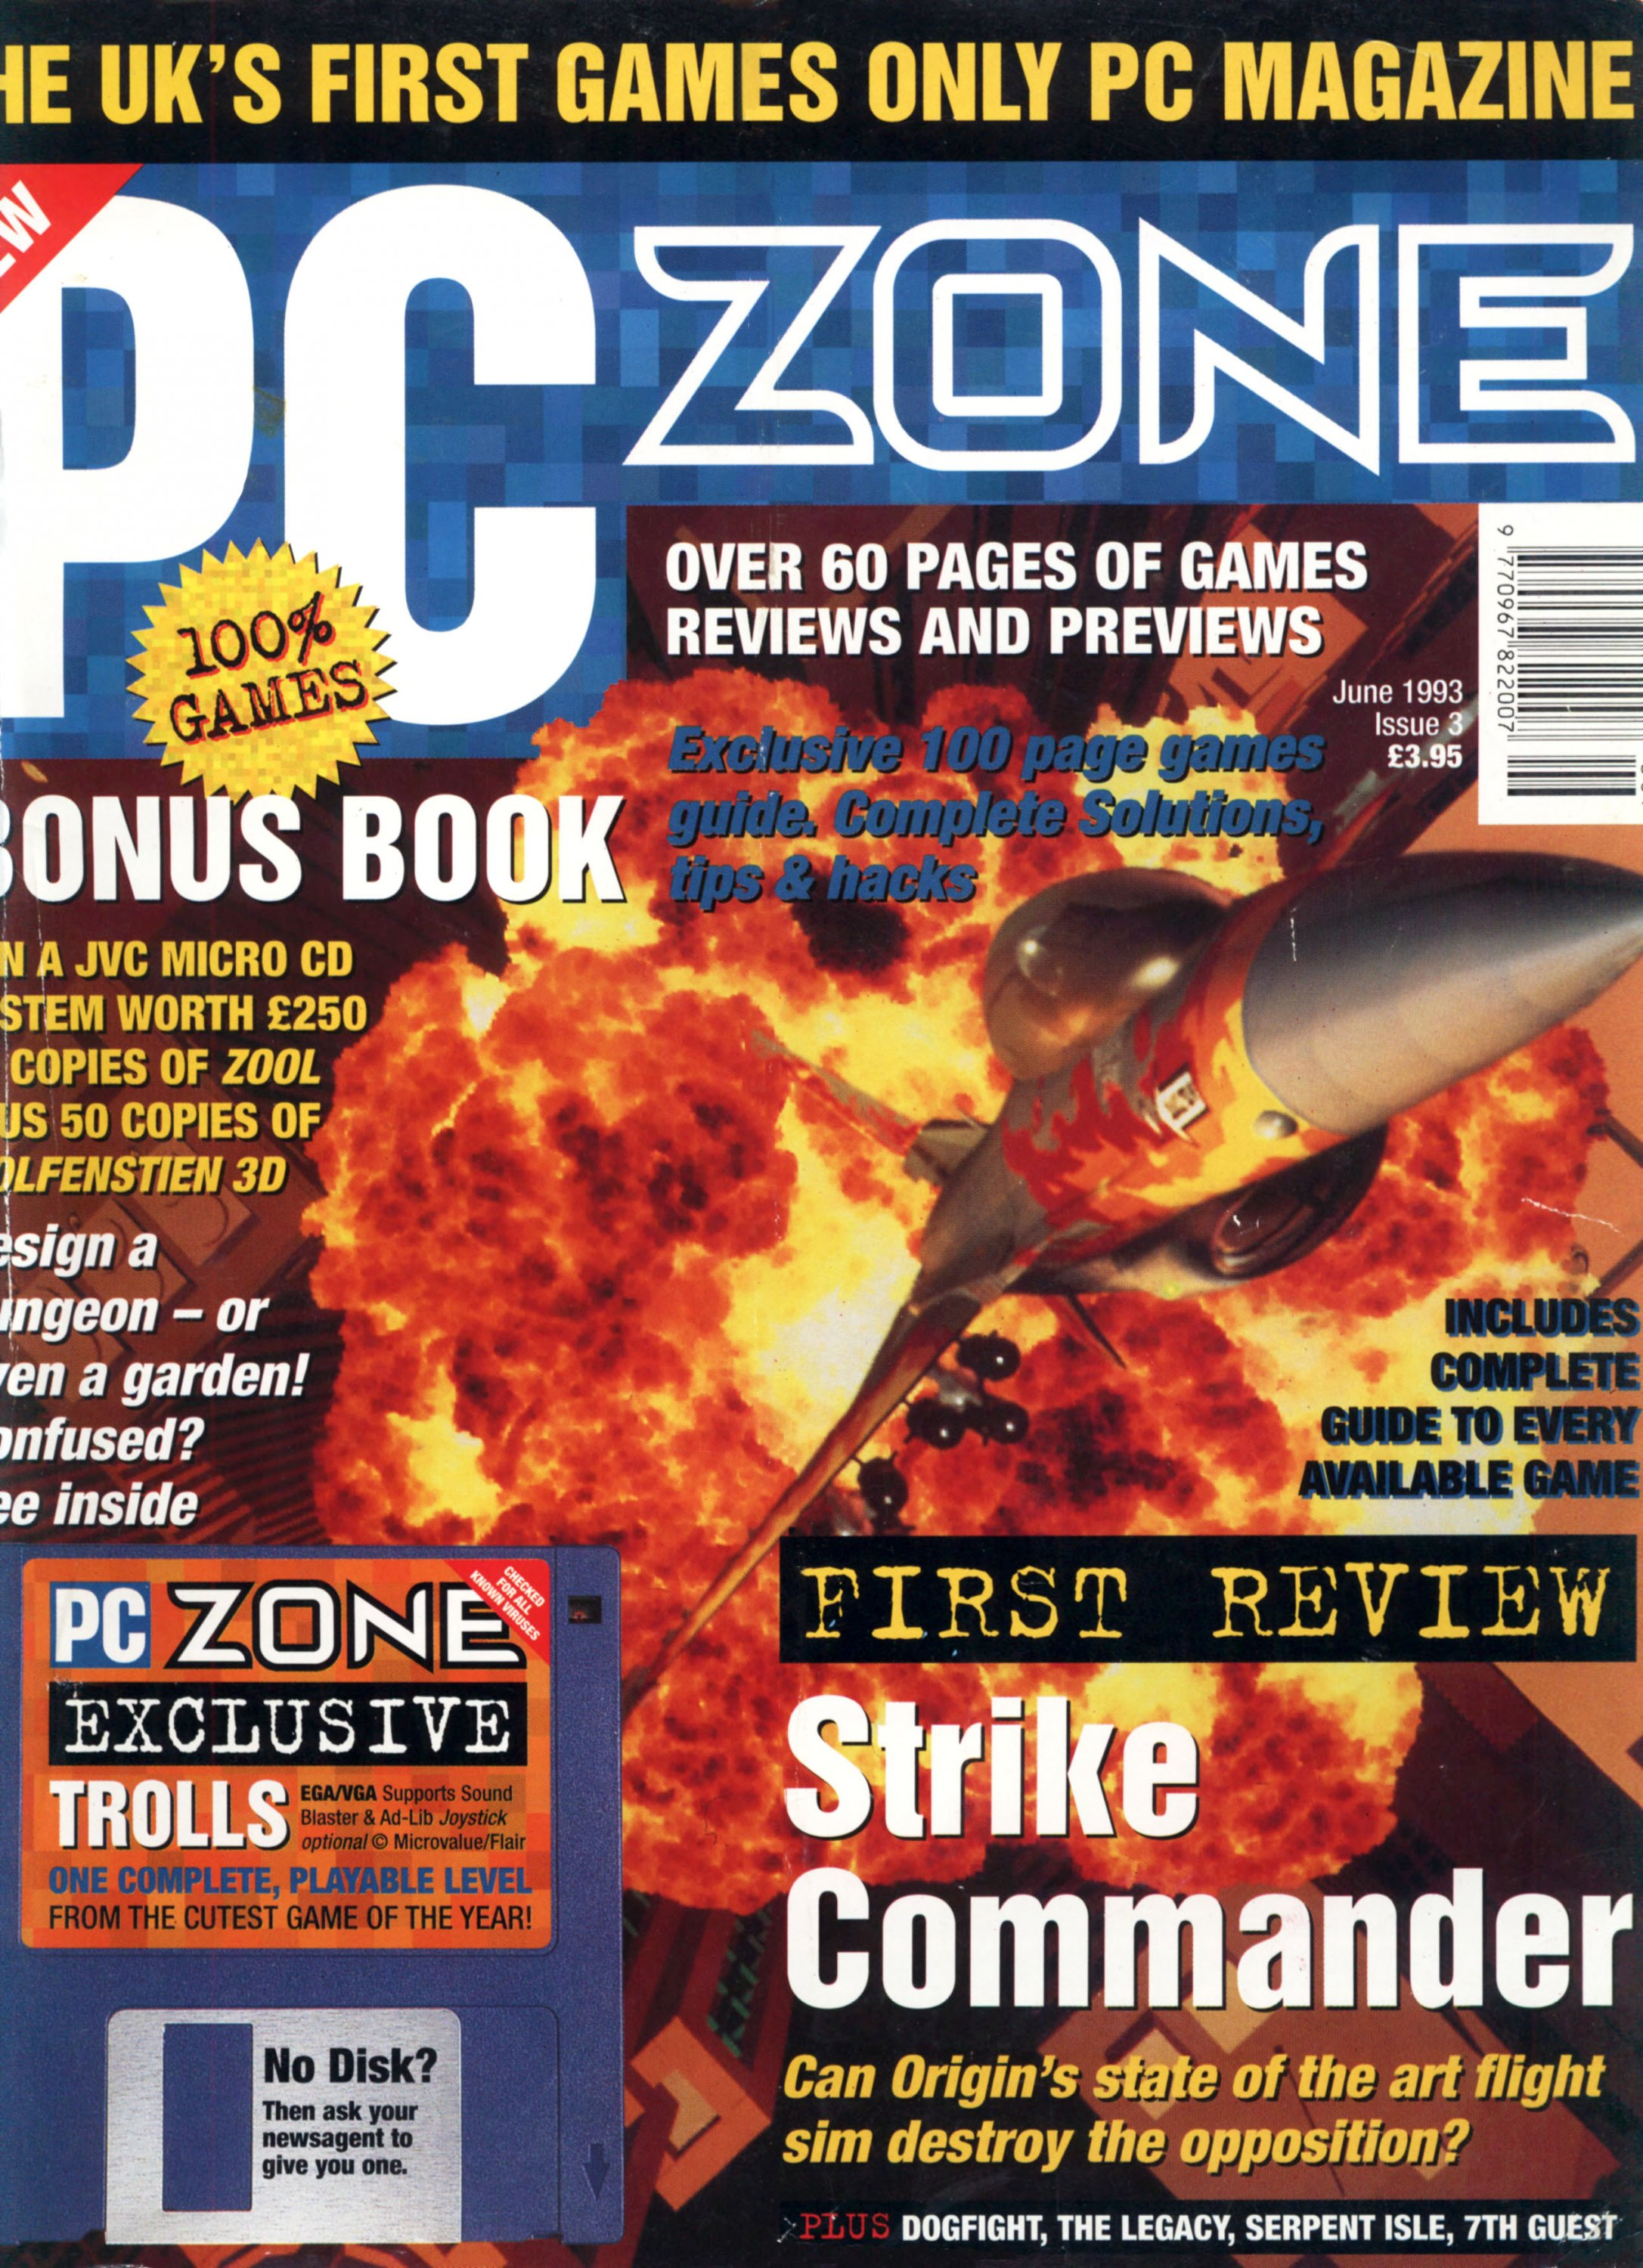 PC Zone Issue 003 (June 1993)